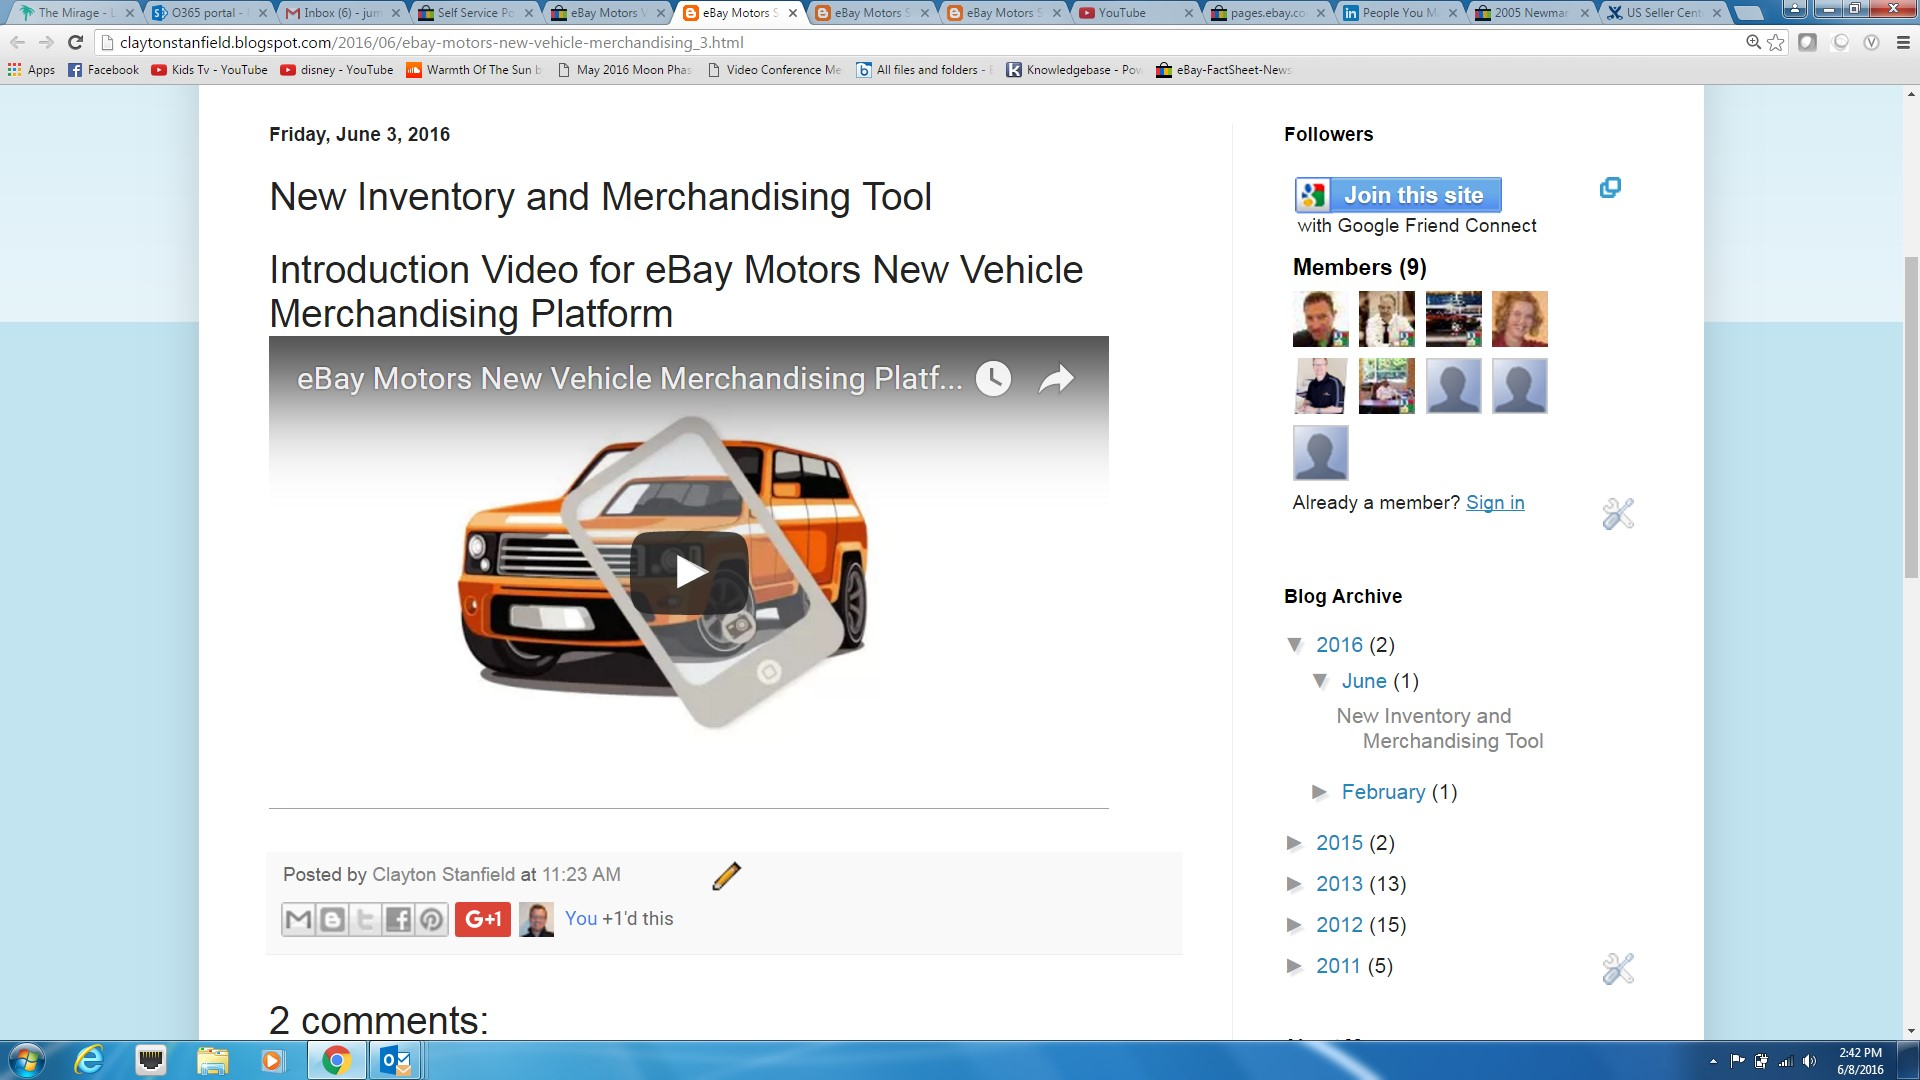 Vehicle Merchandising